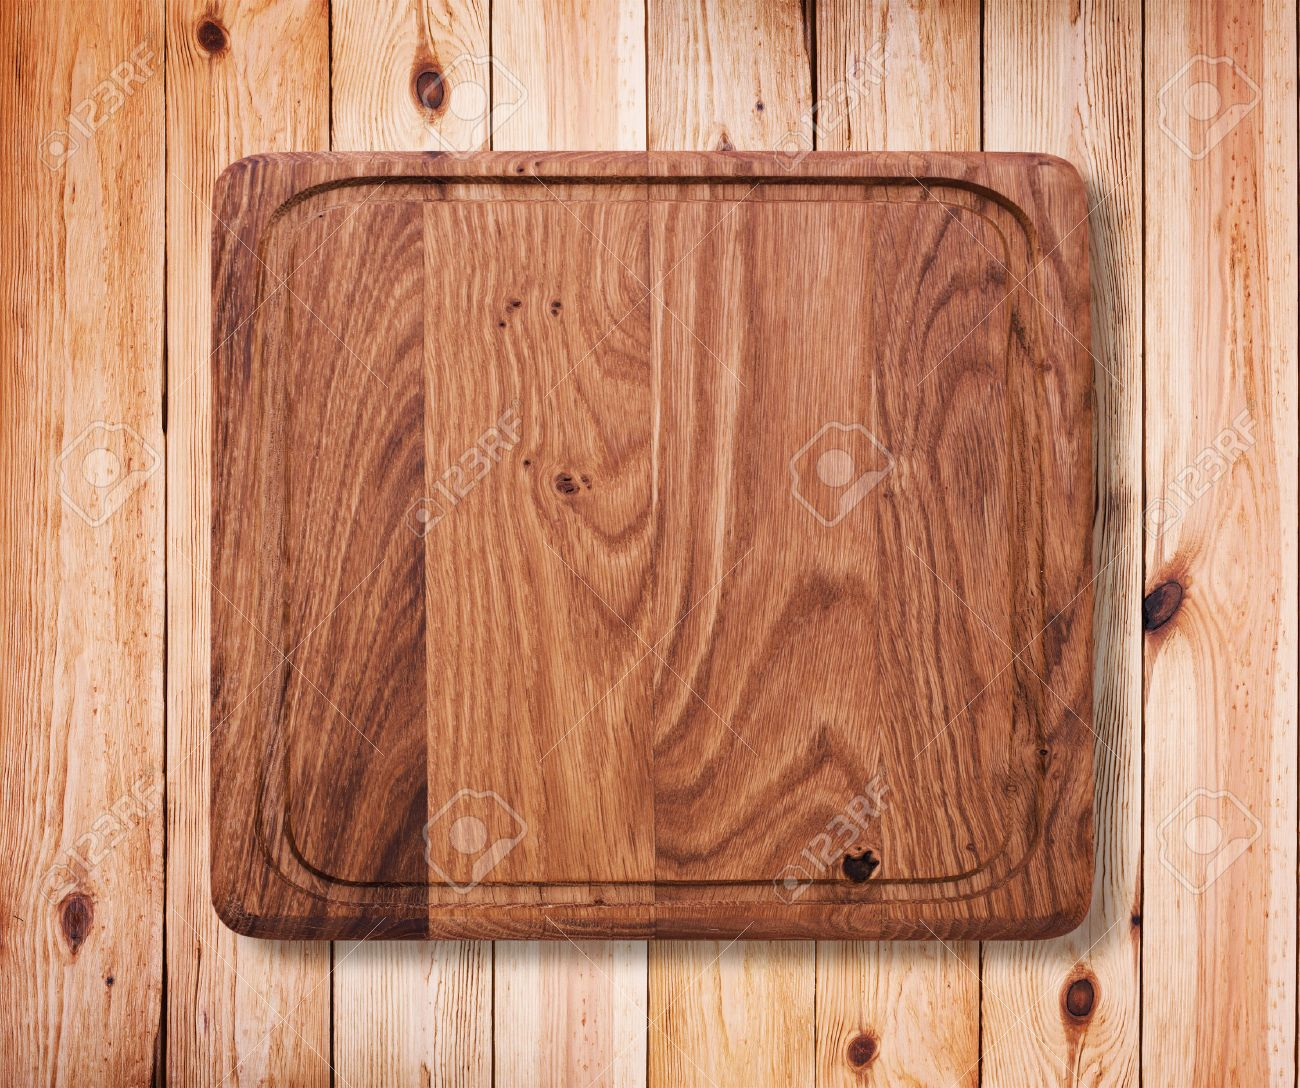 31084248 Wood texture Wooden kitchen cutting board close up Empty wooden table on white background for produc Stock Photo